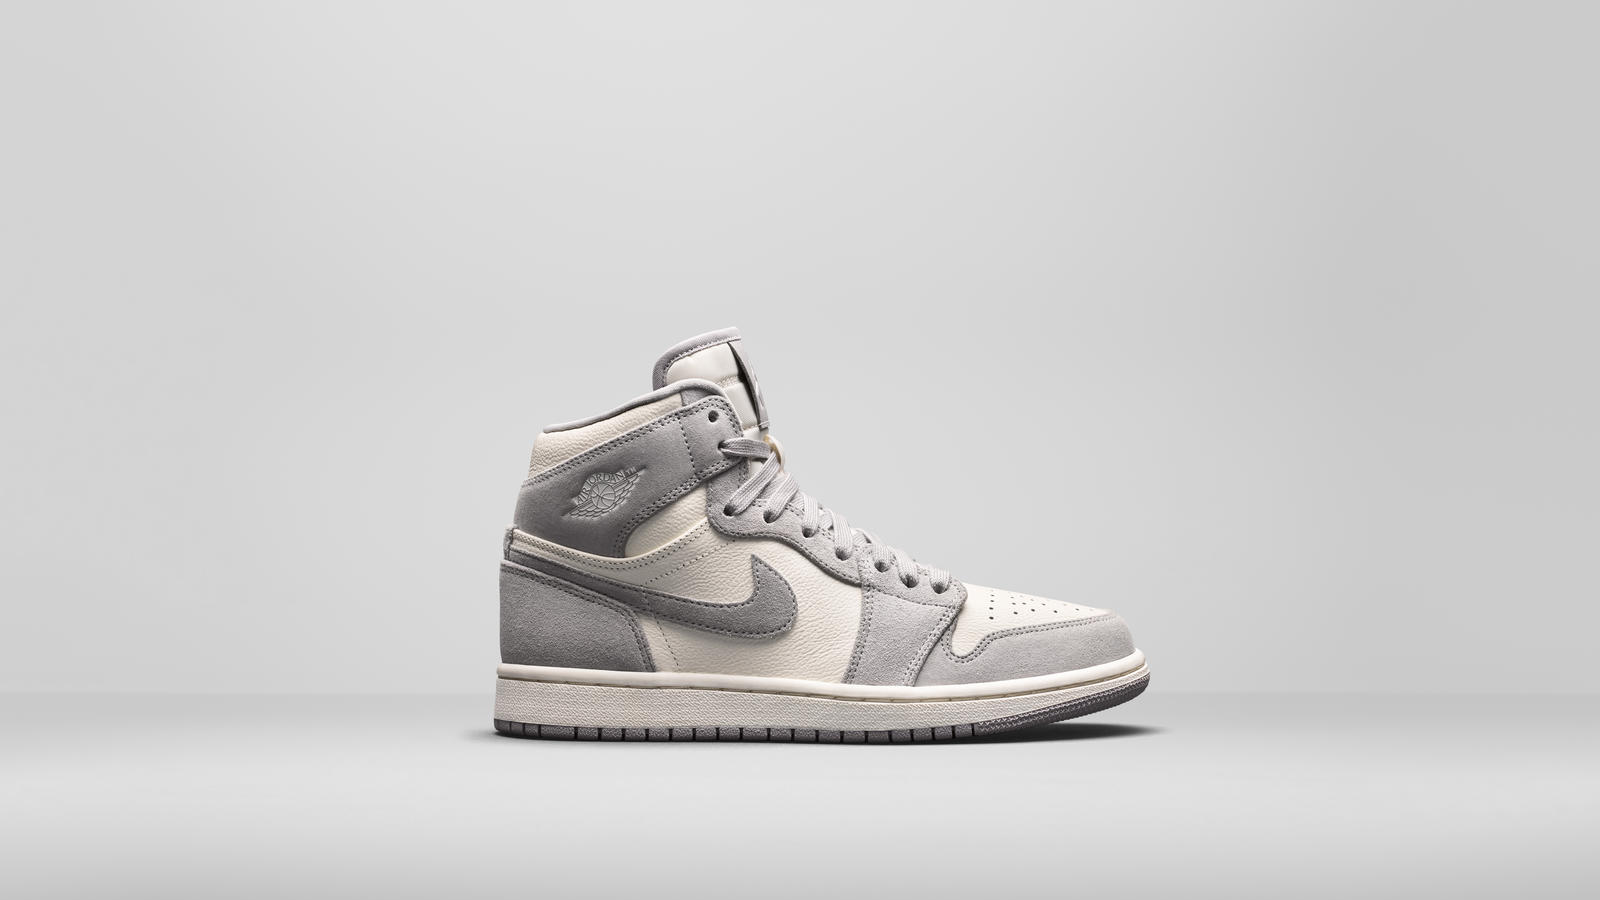 755db4411c5 Jordan Brand Summer 2019 Women's Air Jordan 1, Air Jordan XII and ...